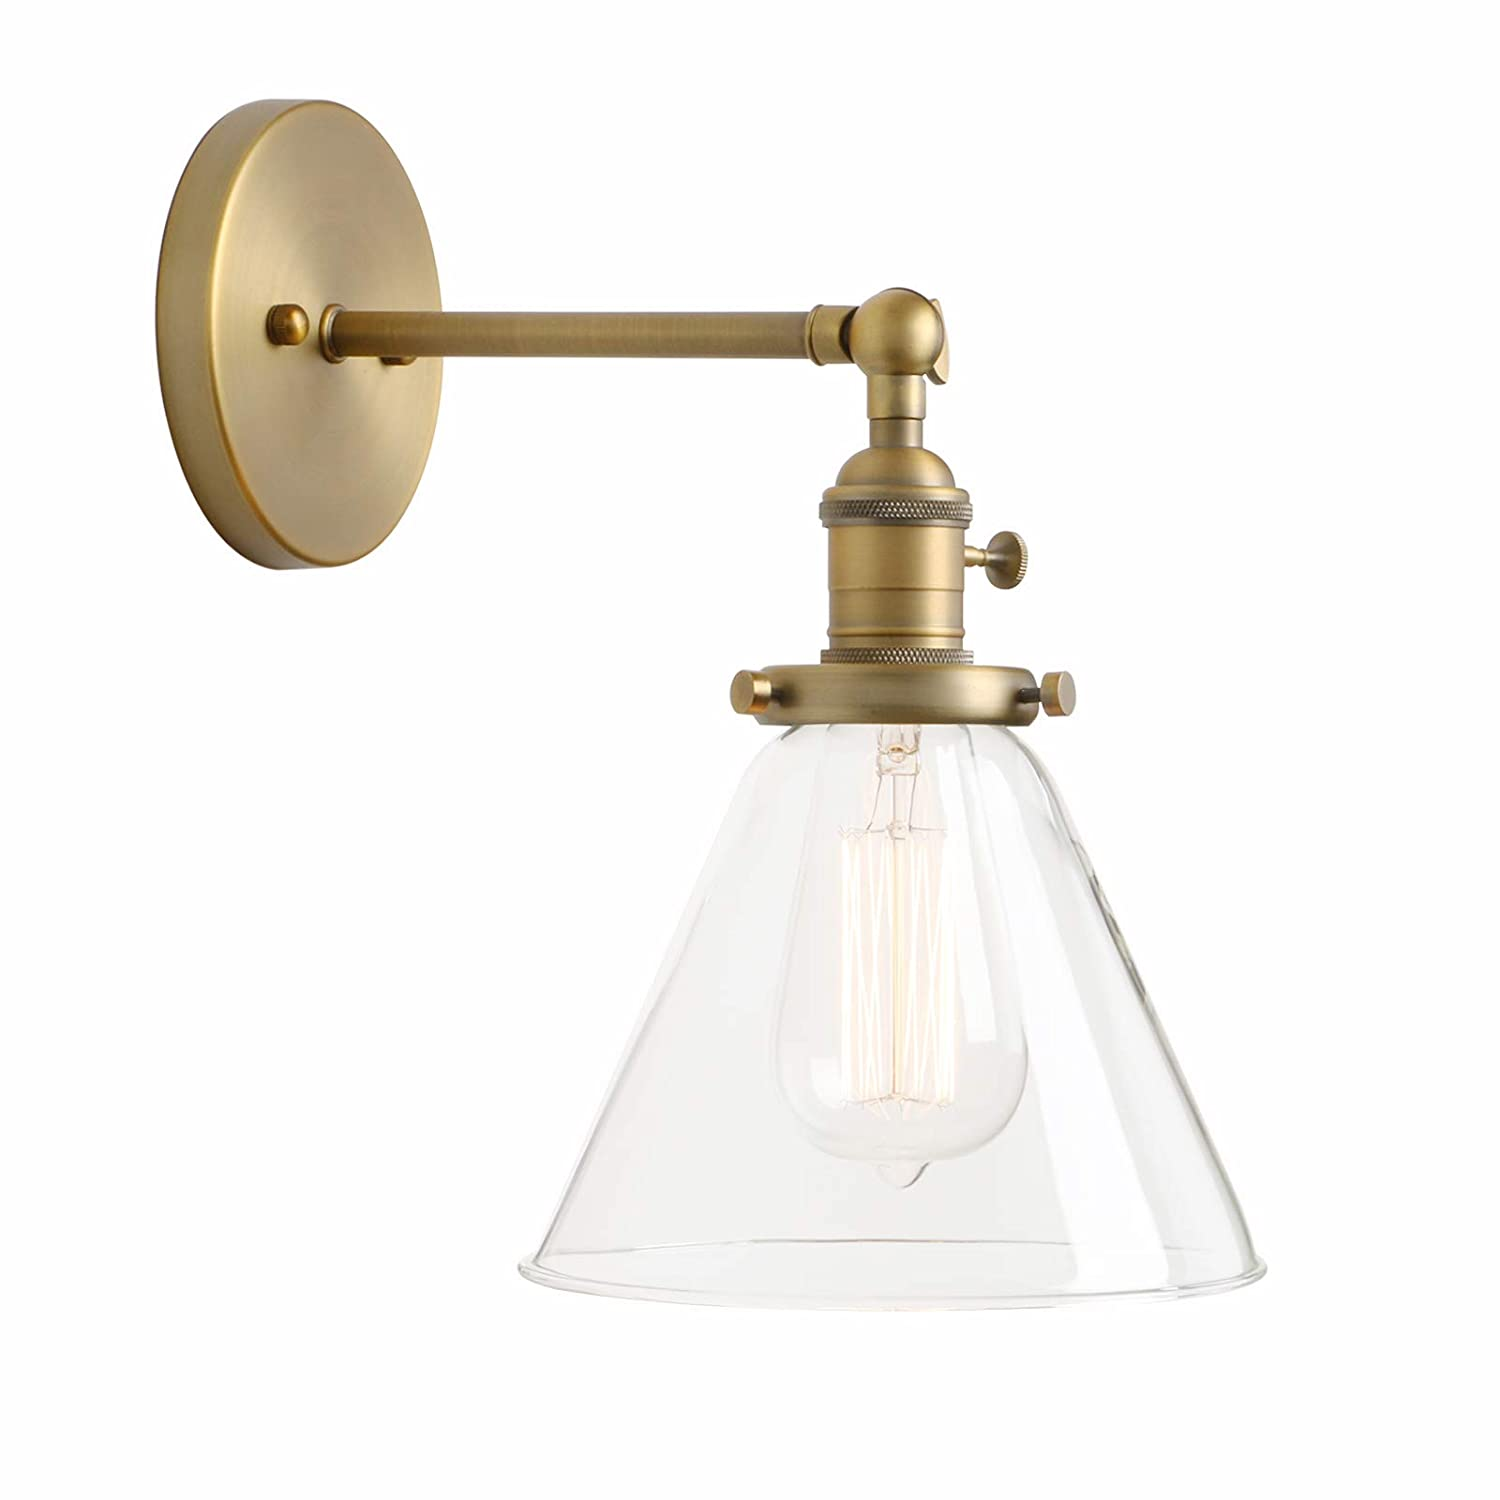 Permo single sconce with funnel flared glass clear glass shade 1 light wall sconce wall lamp antique